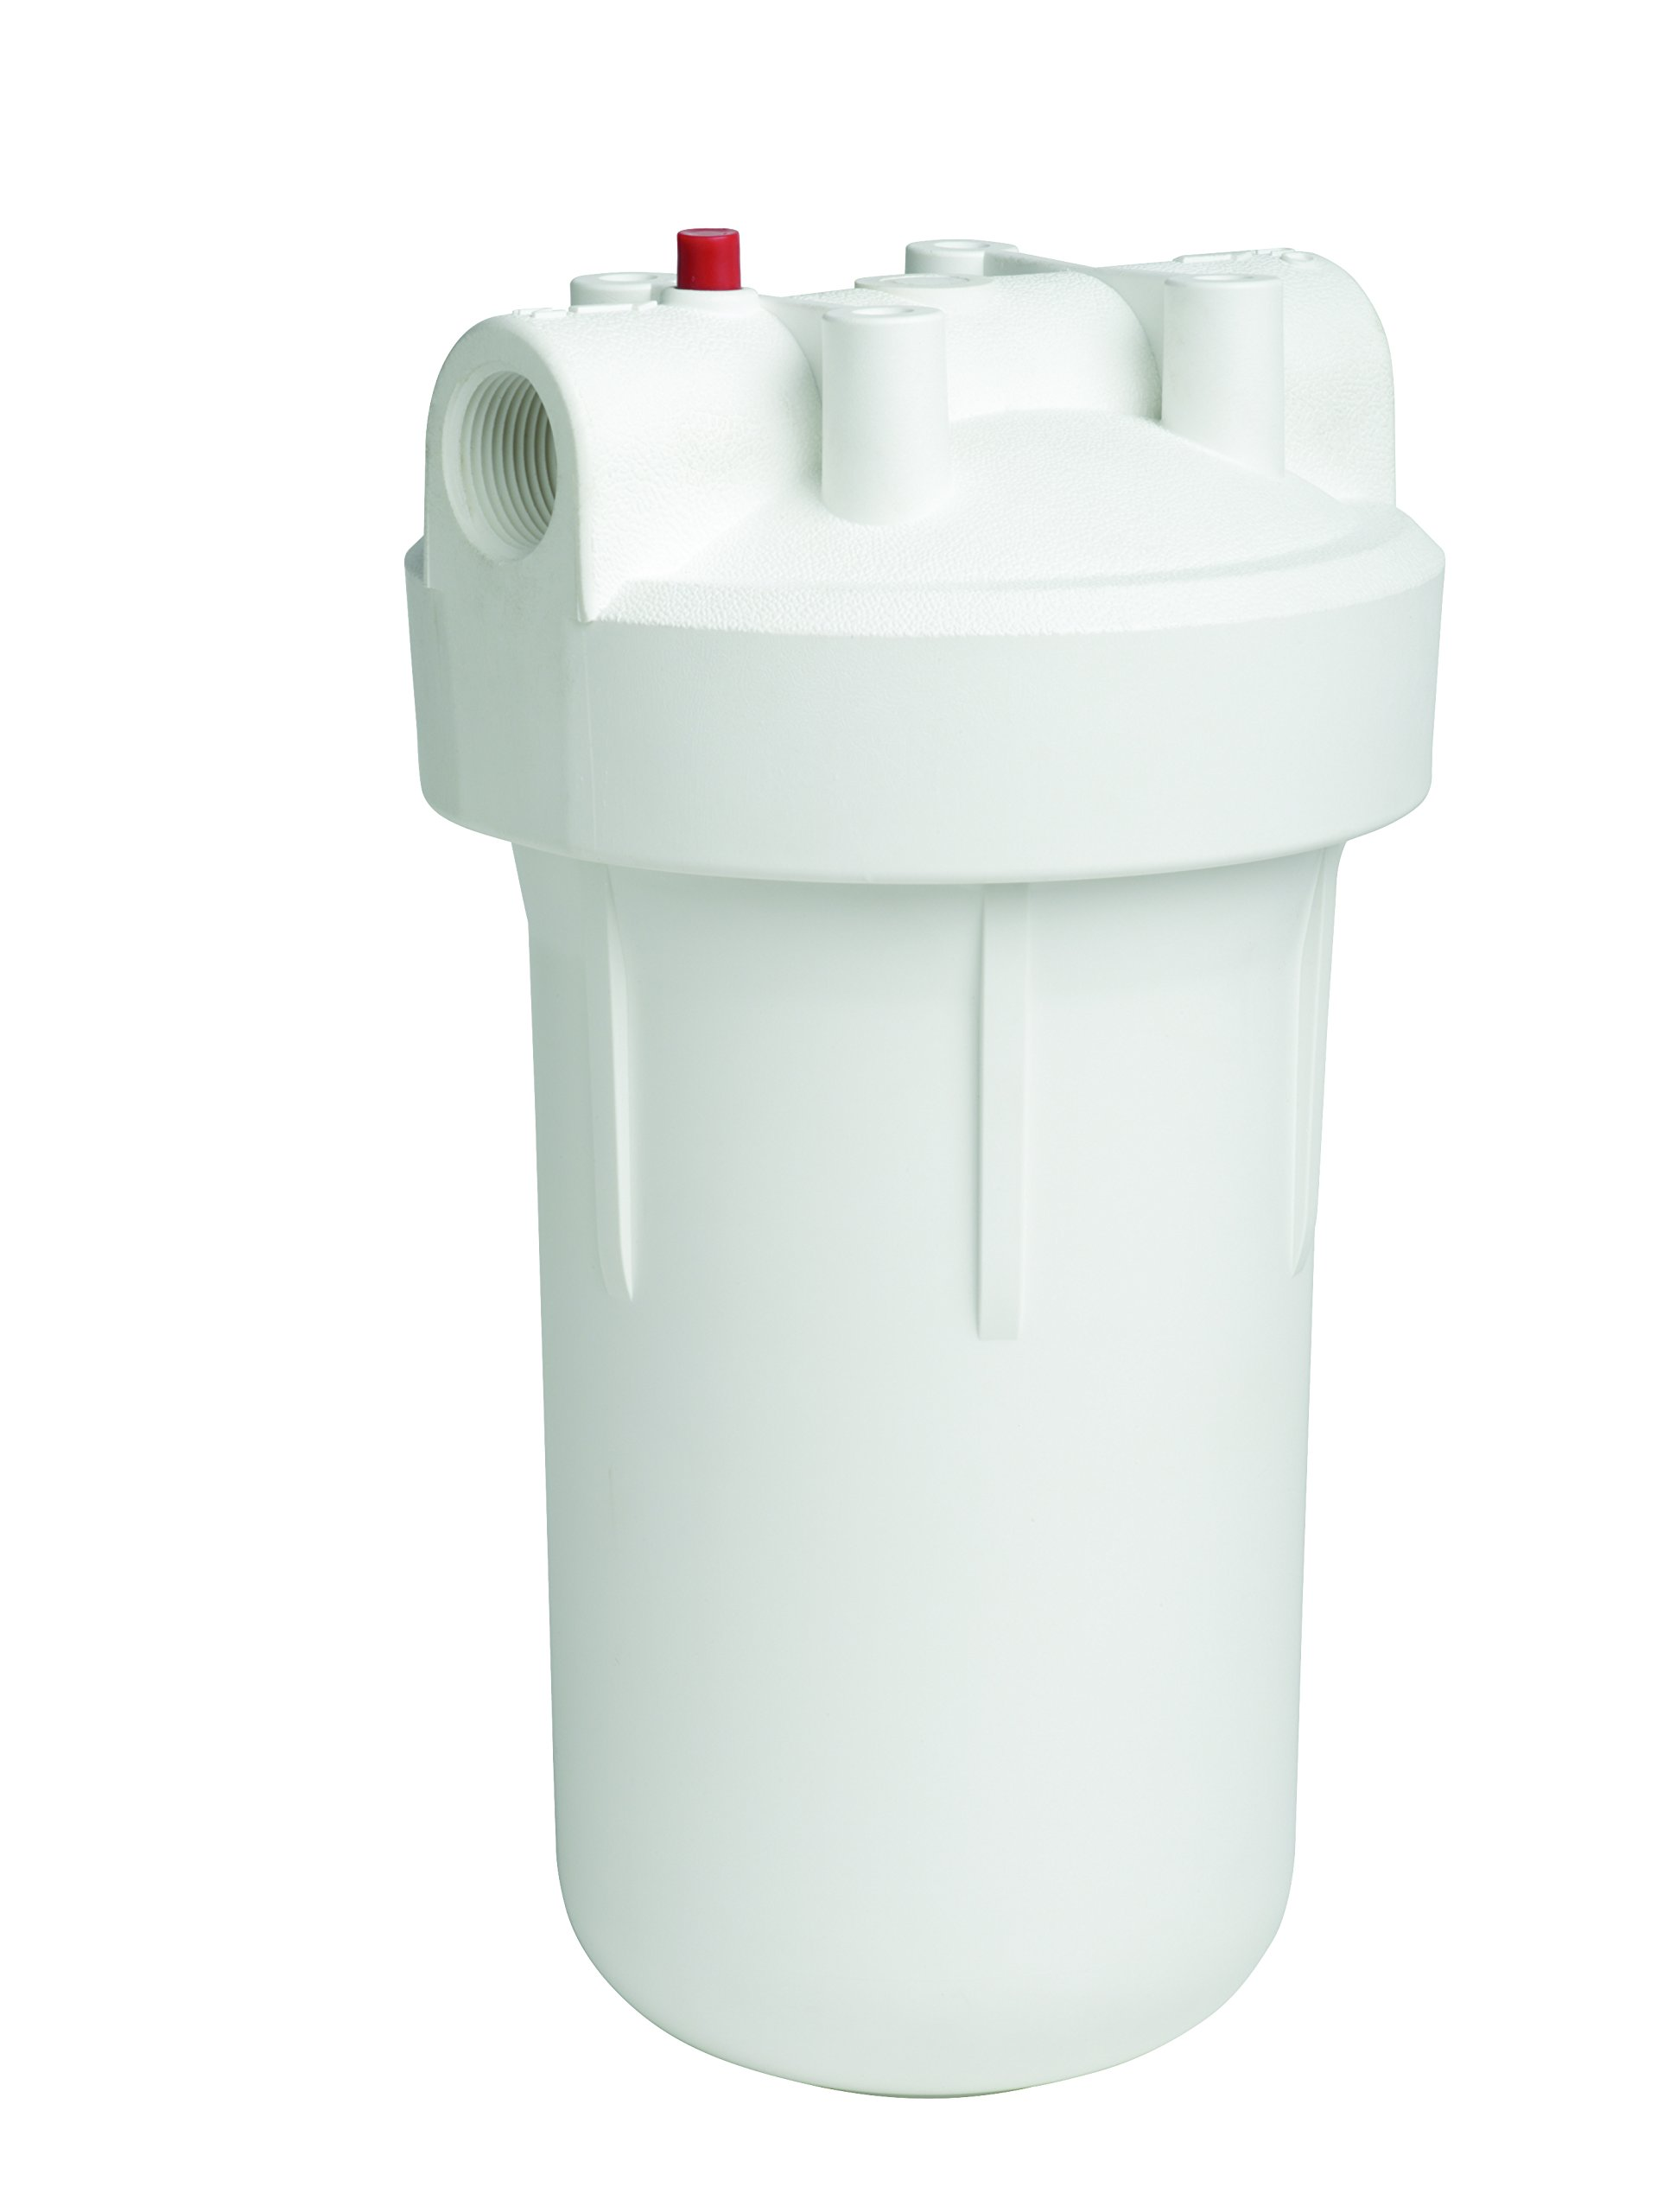 EcoPure EPWO4 Universal Large Capacity Whole House Water Filter Housing - NSF Certified - Premium Filtration System - Built to Last